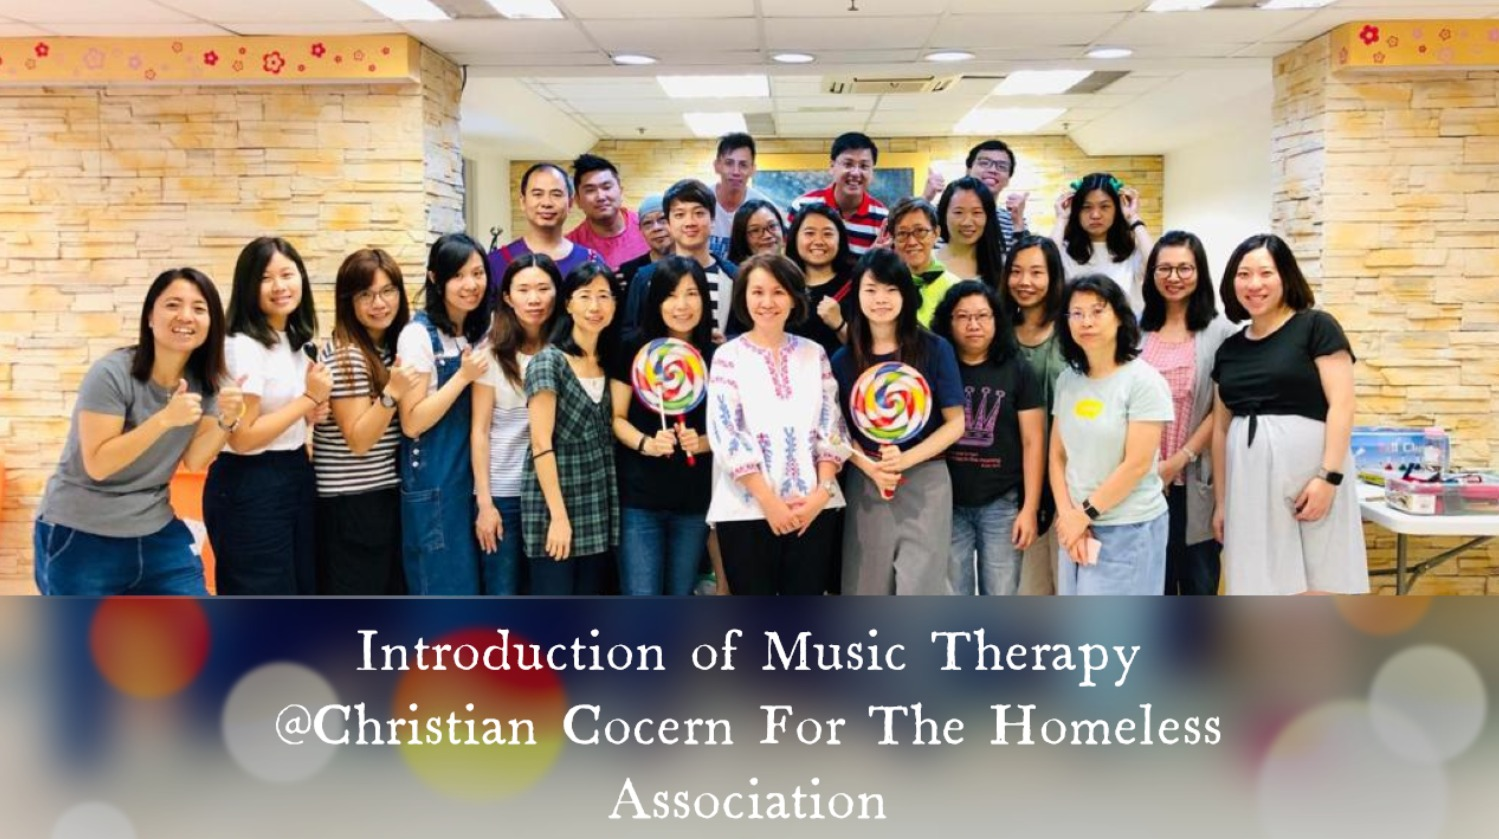 Introduction of Music Therapy @CCGTHA